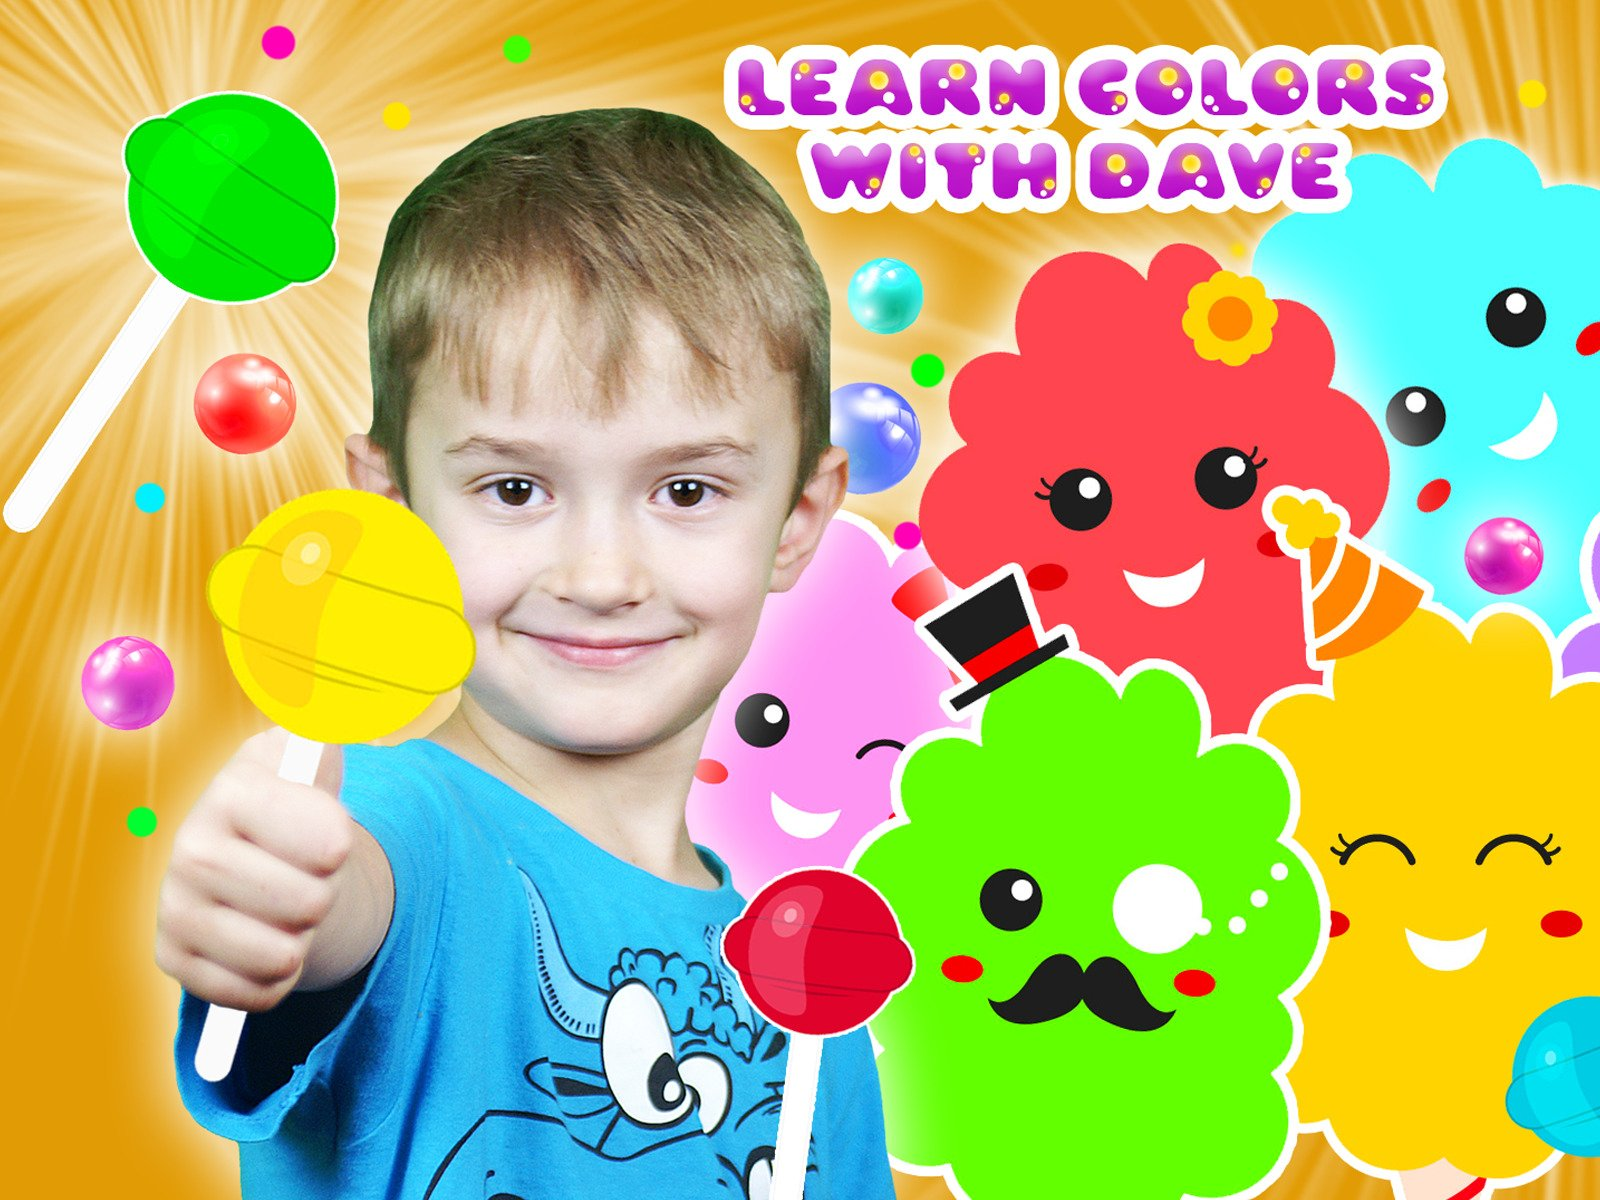 Learn Colors with Dave on Amazon Prime Video UK